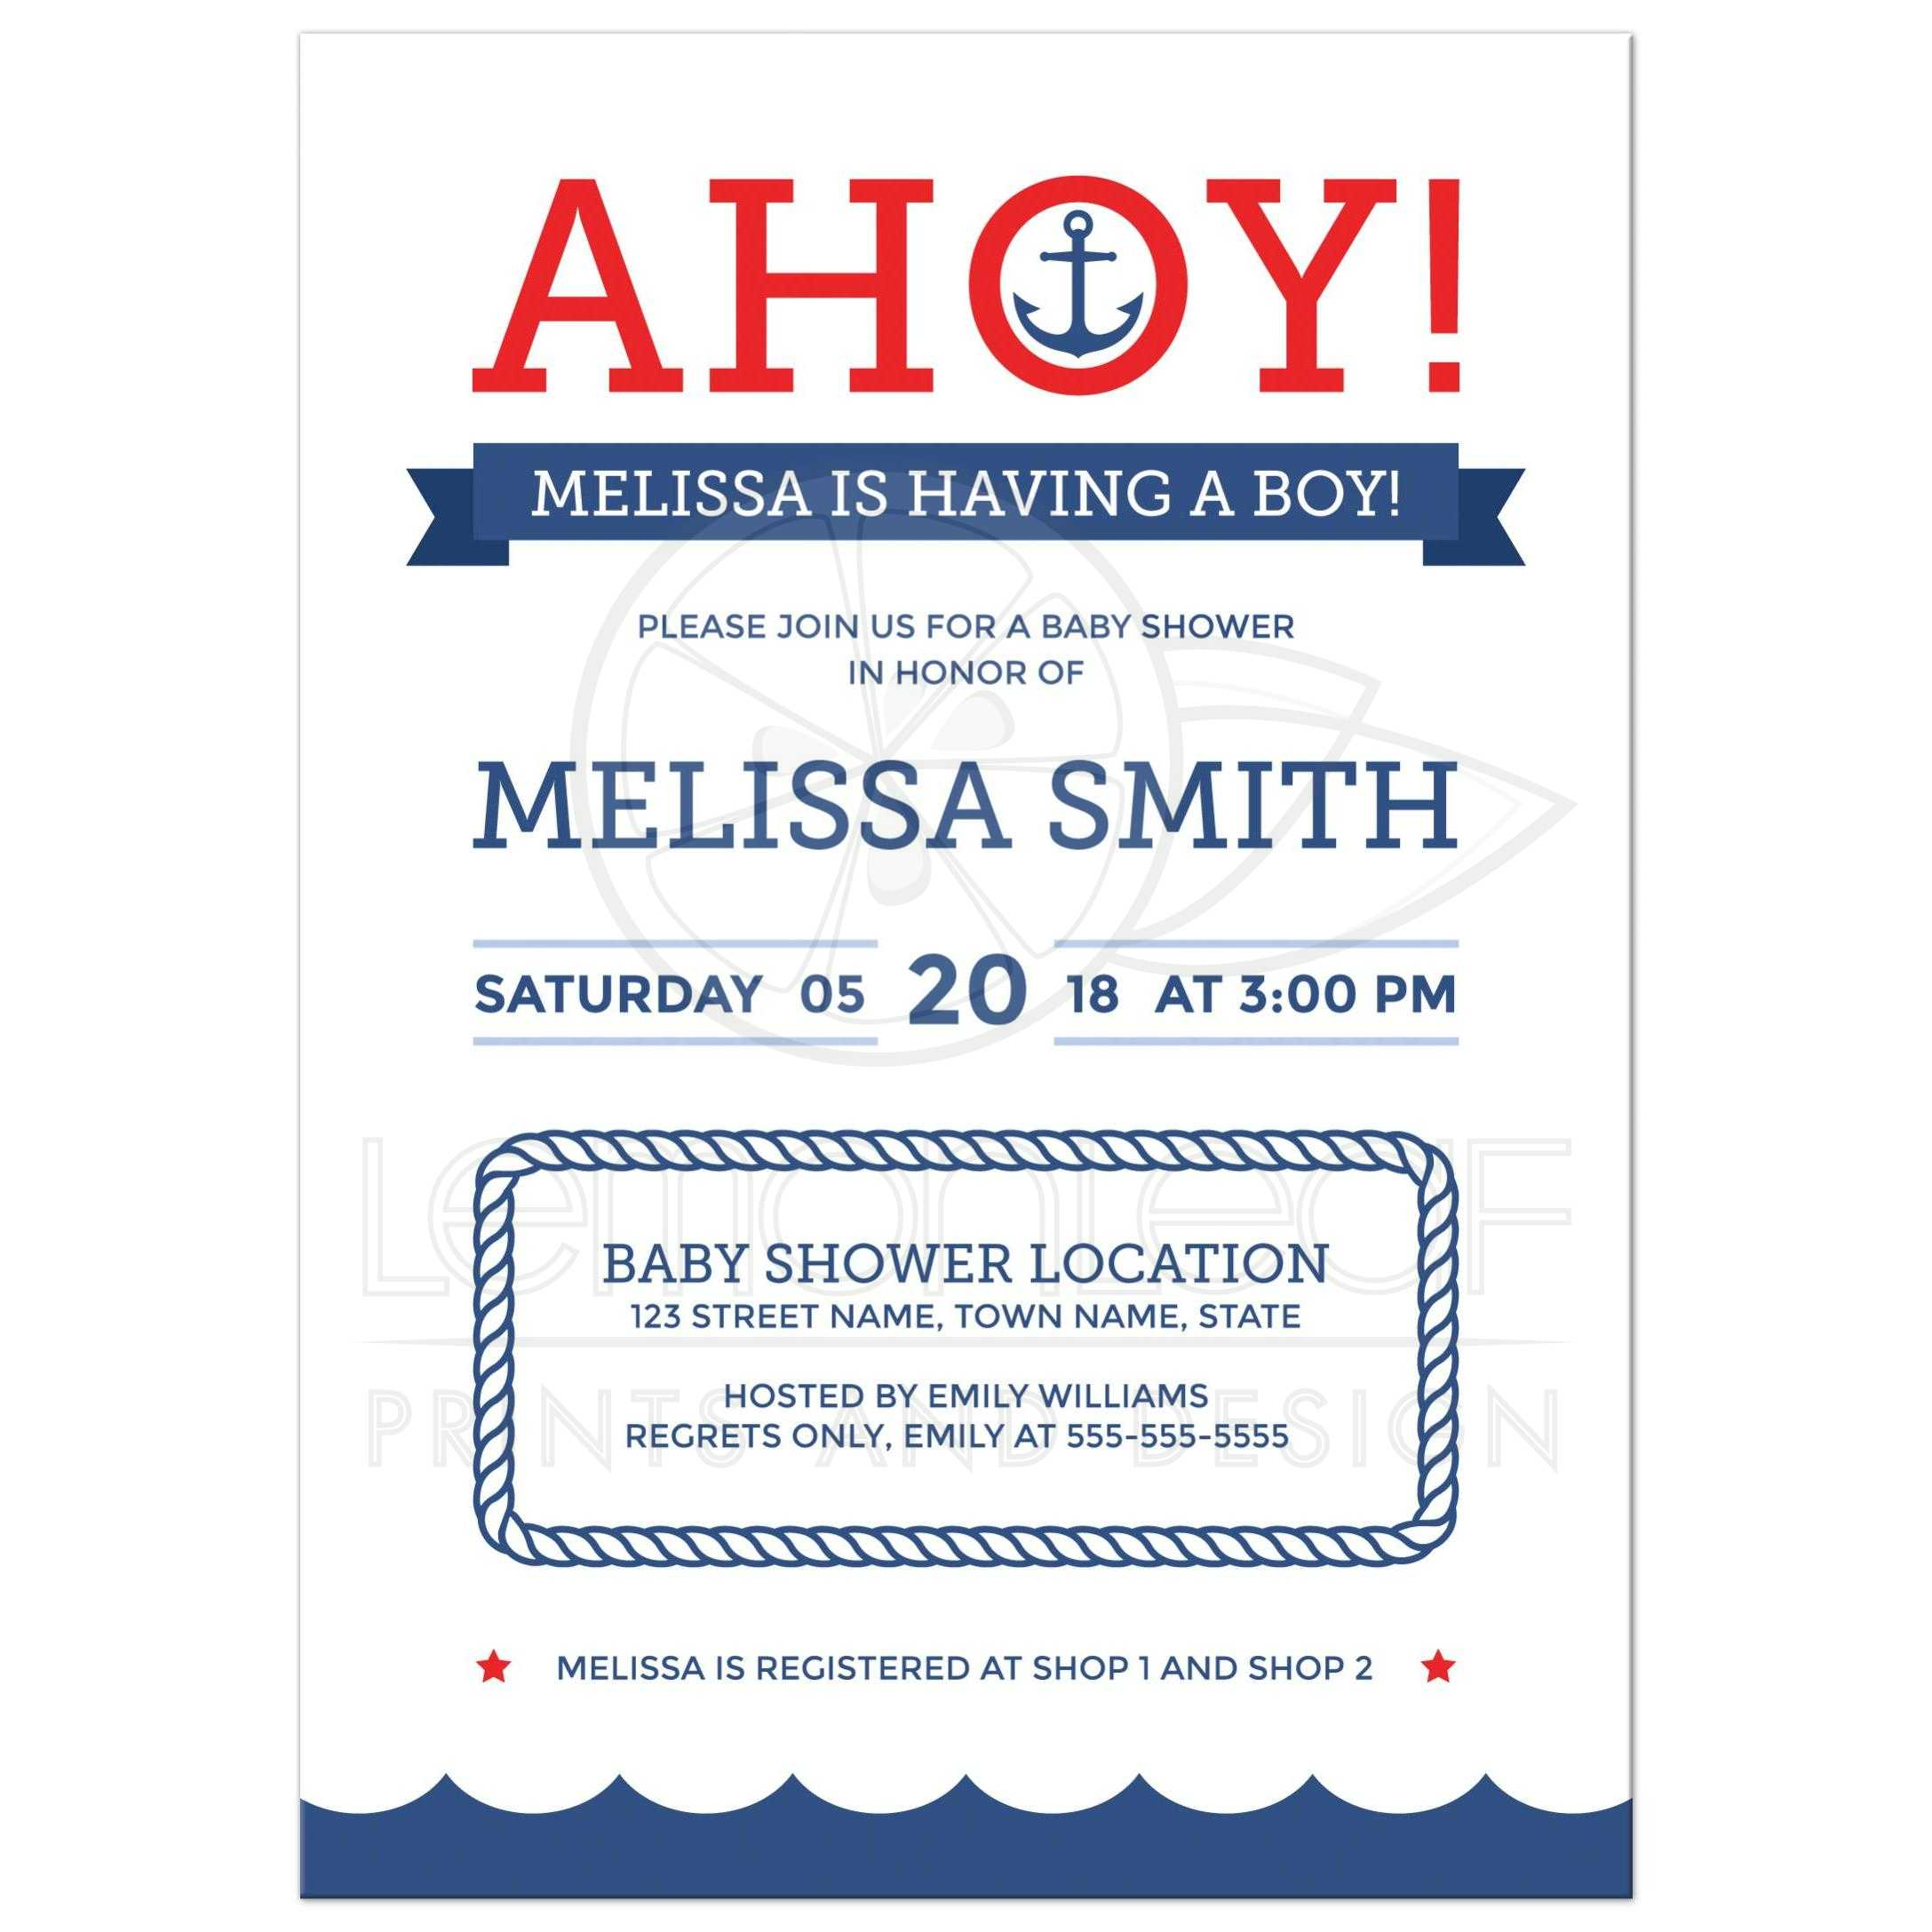 Ahoy nautical baby shower invitation with anchor red and blue ahoy nautical baby shower invitation with anchor and blue wave border filmwisefo Images